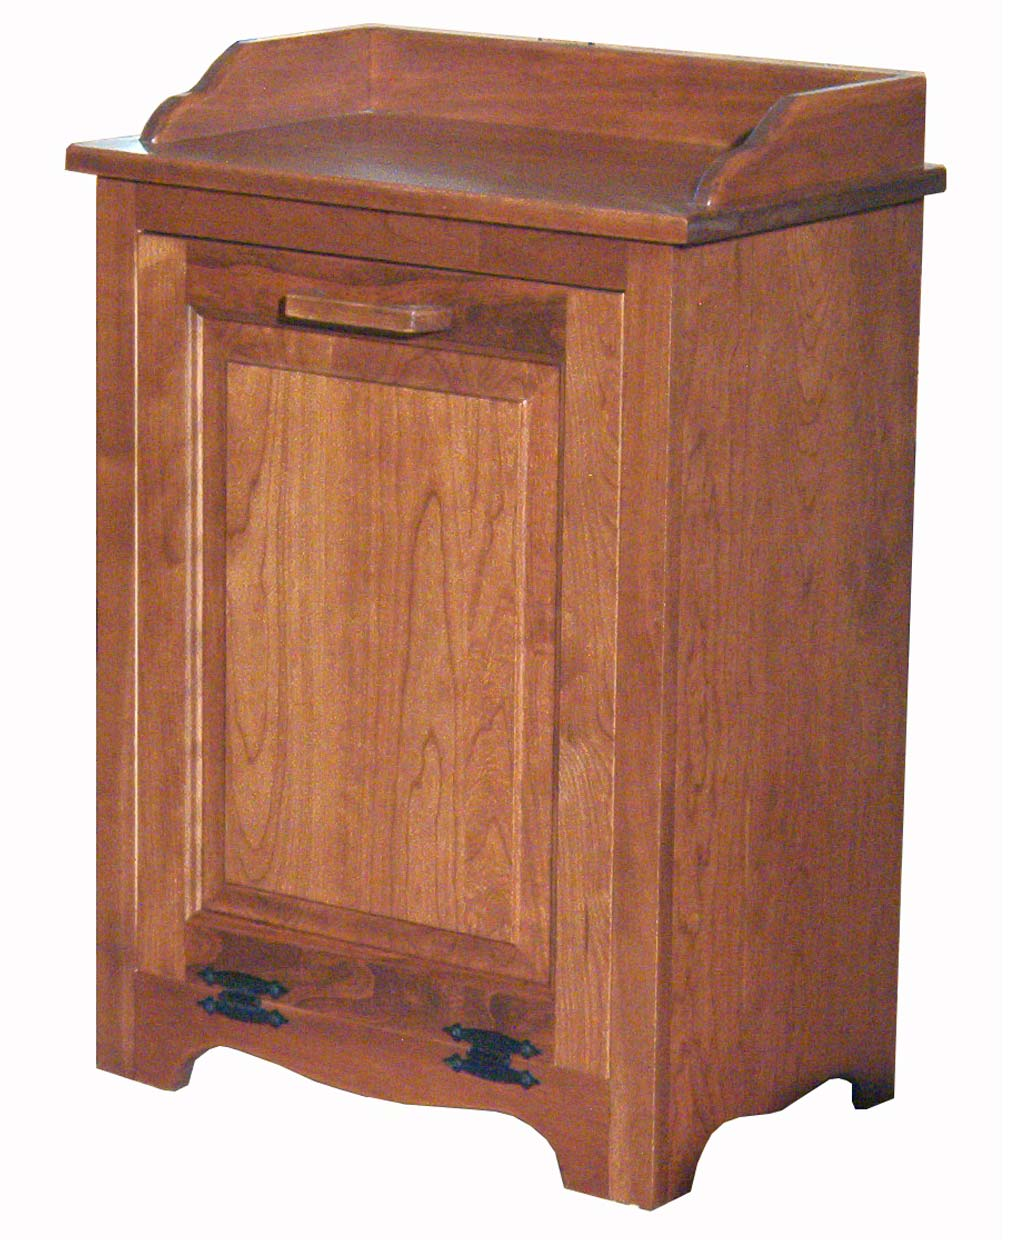 Kitchen Waste Bins: Amish Direct Furniture